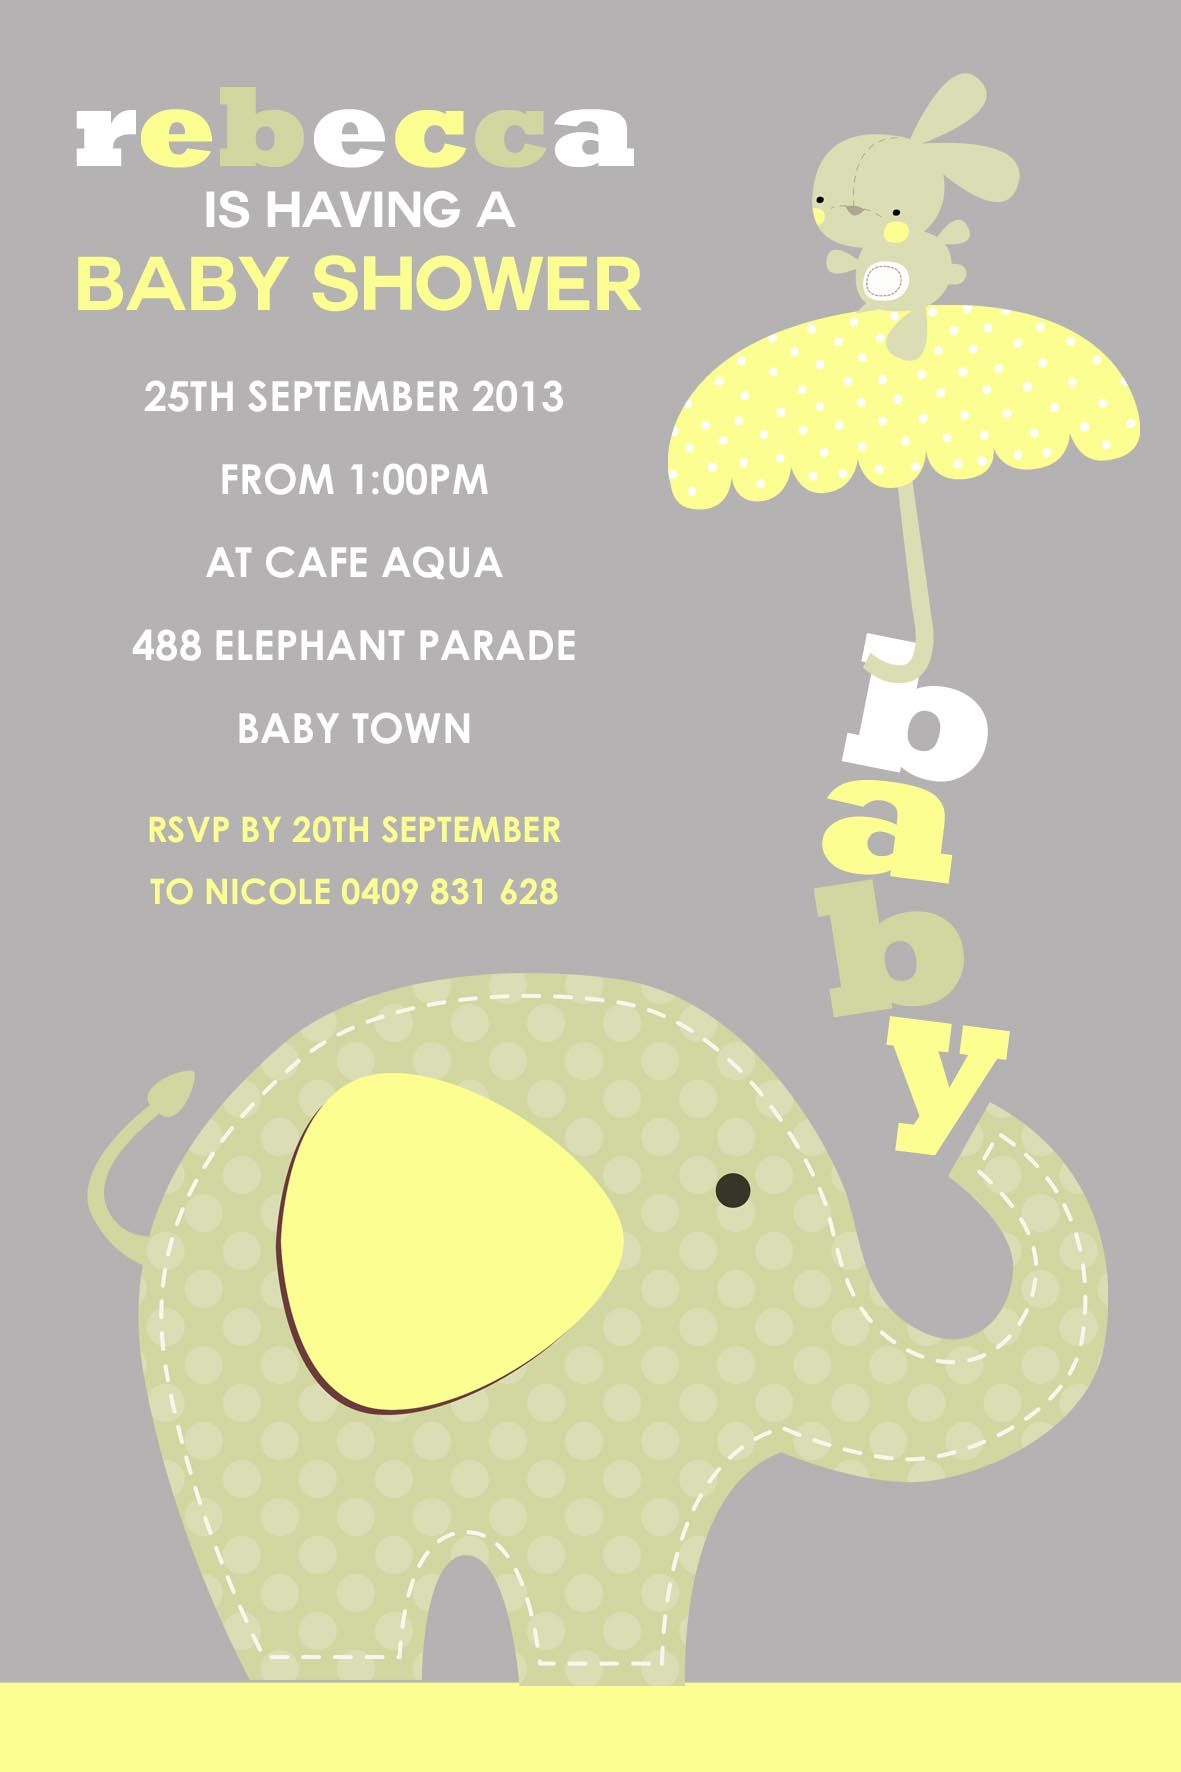 Image for Create Baby Shower Invitations Online Free | Baby Shower ...